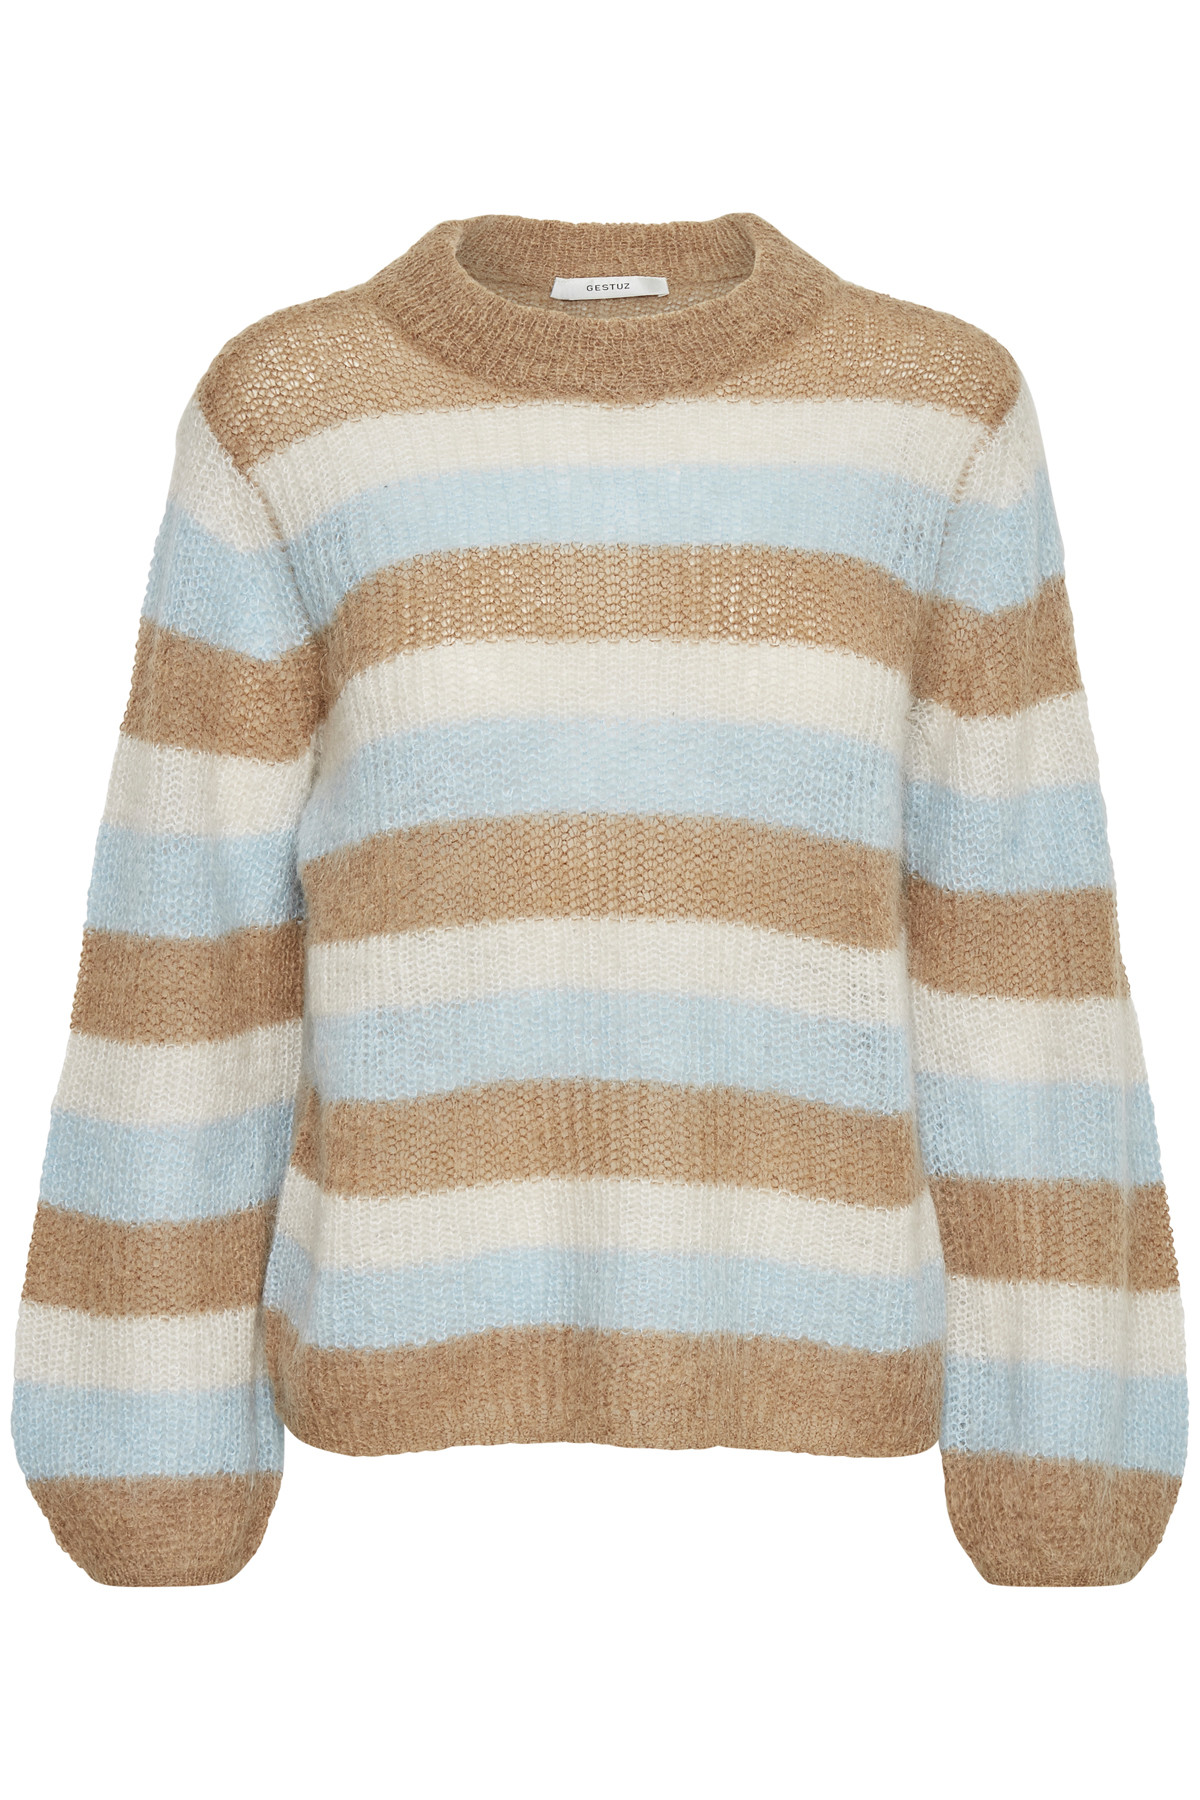 Image of   GESTUZ HOLLY STRIPE PULLOVER (Tan Multi Stripe 90559, L)